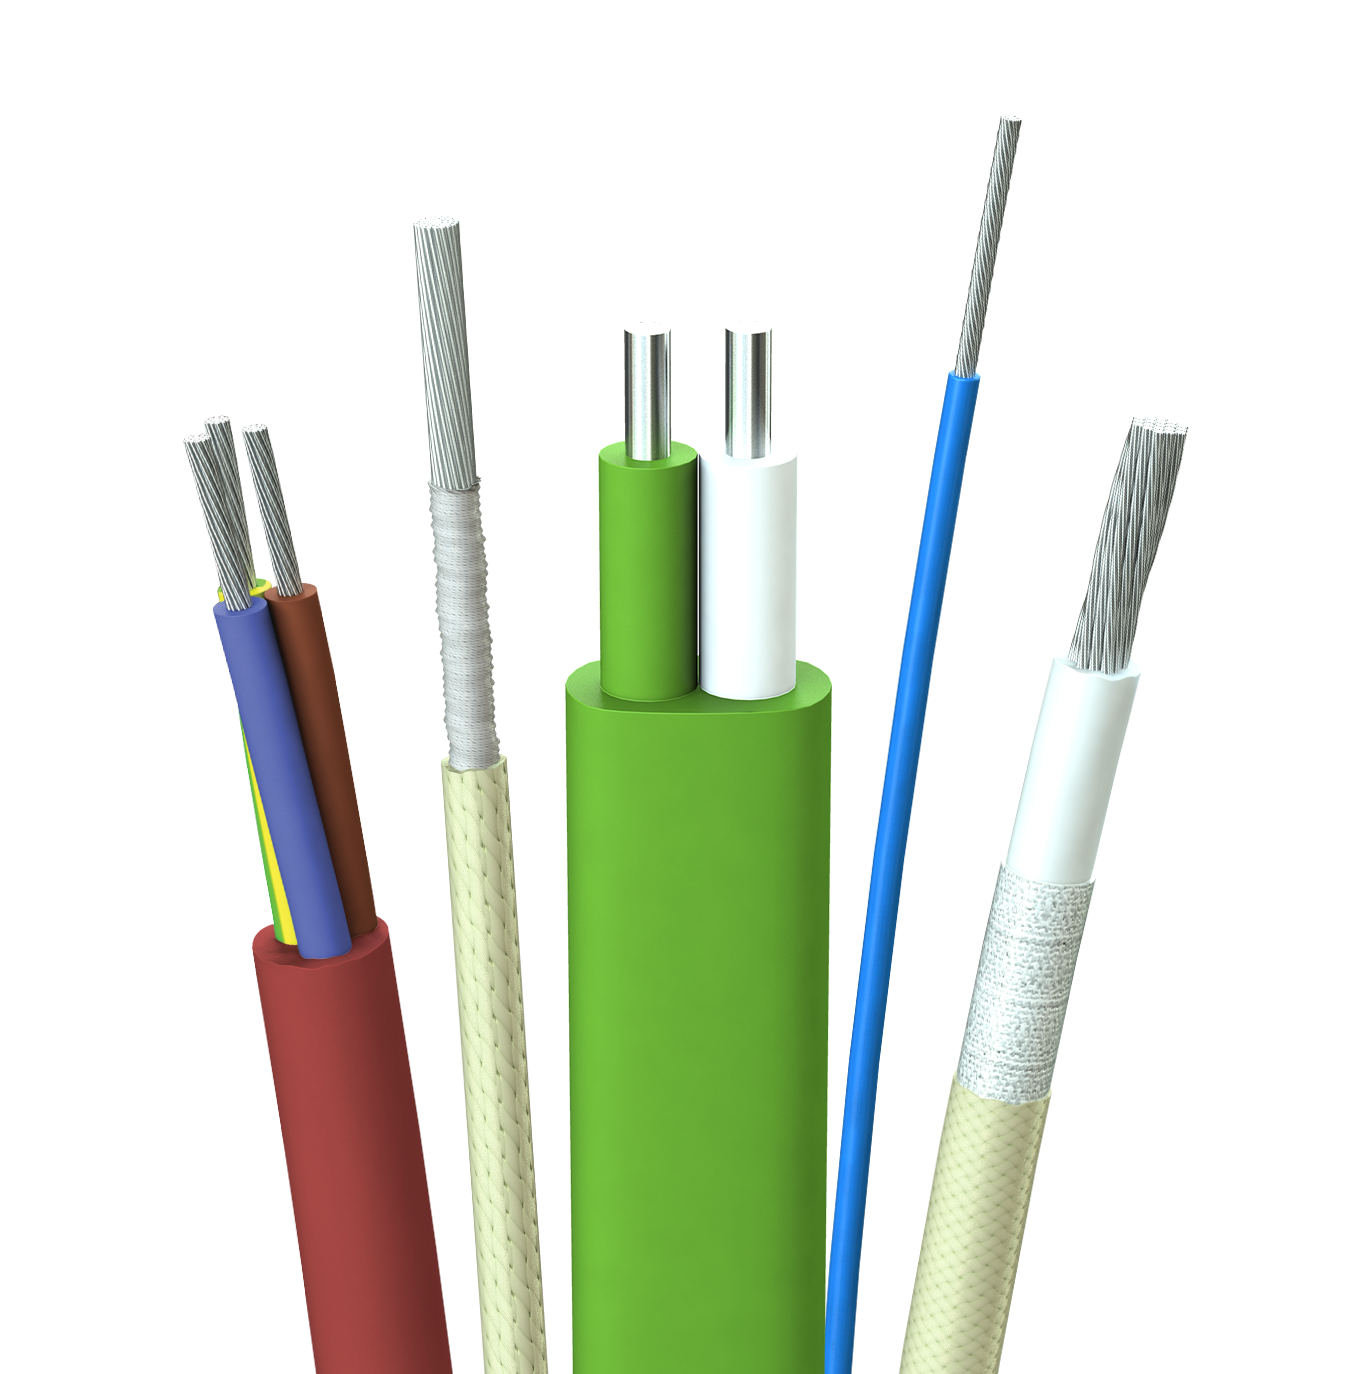 High Temperature Cables Explained Fs Structured Wiring Image Search Results The Most Popular Range Of Are Silicone Single And Multicores Which Capable Working At Temperatures Between 50c To 180c